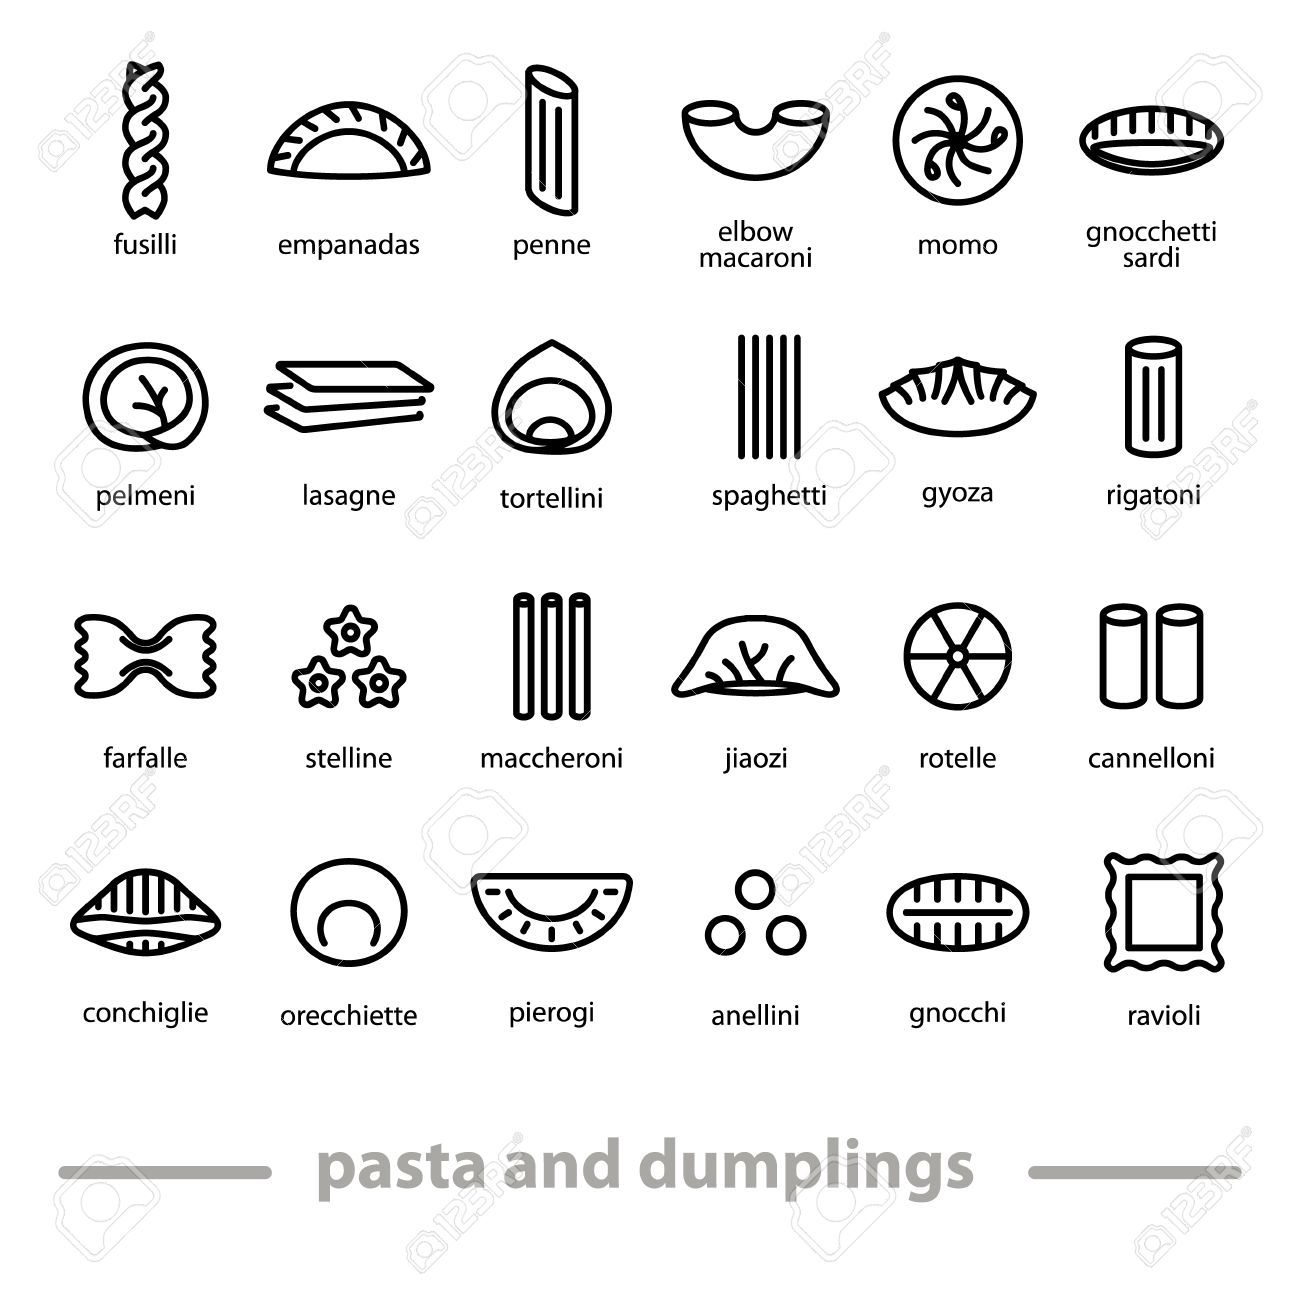 pasta and dumplings icons - 56605496